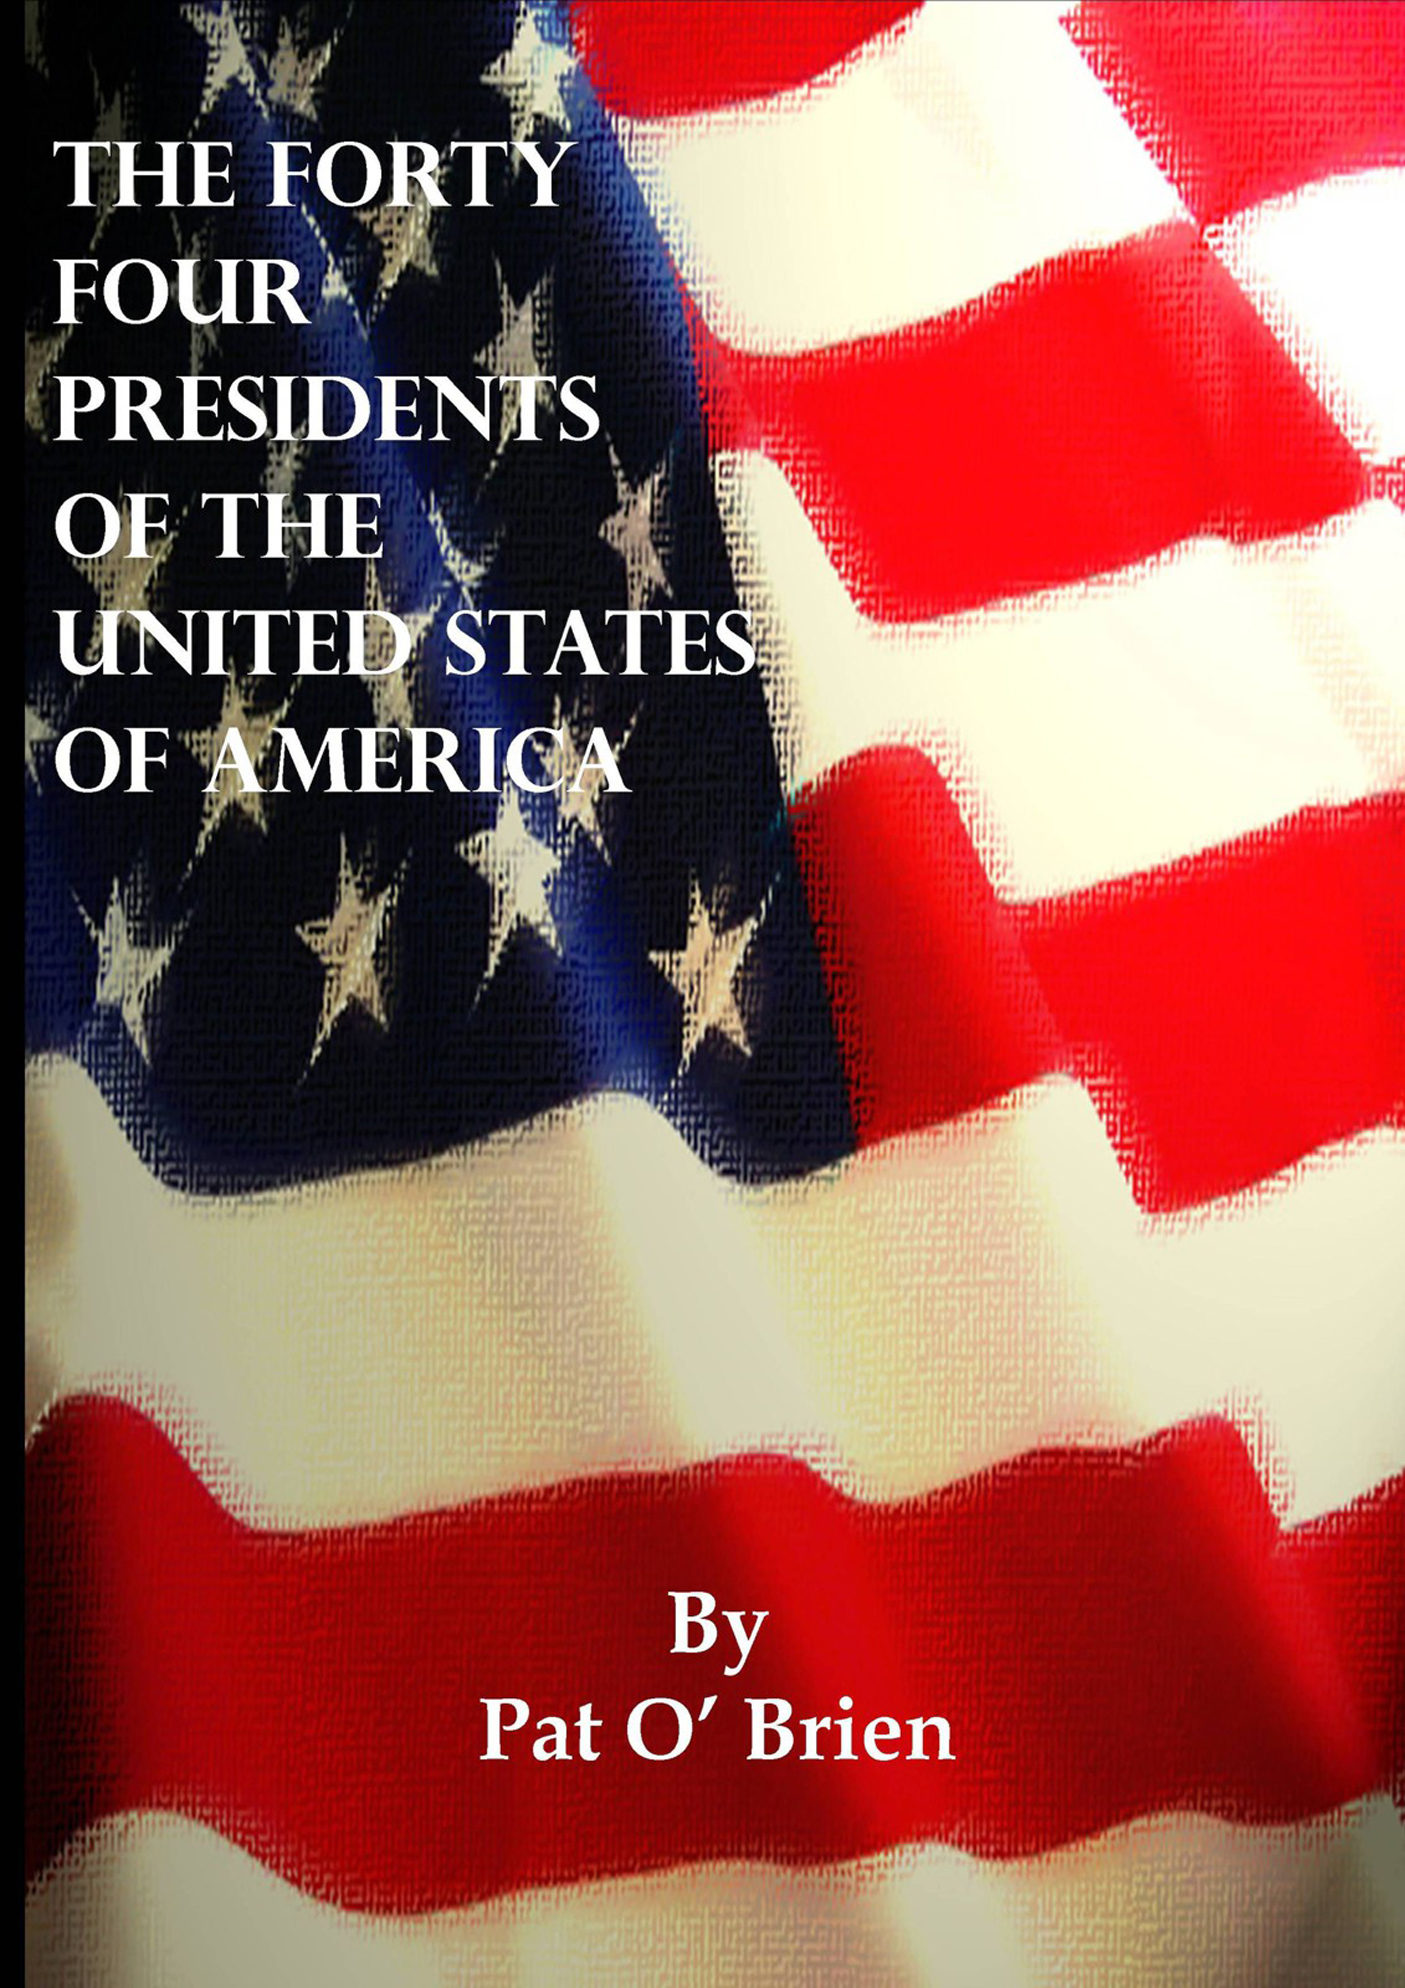 The Forty Four Presidents of The United States of America